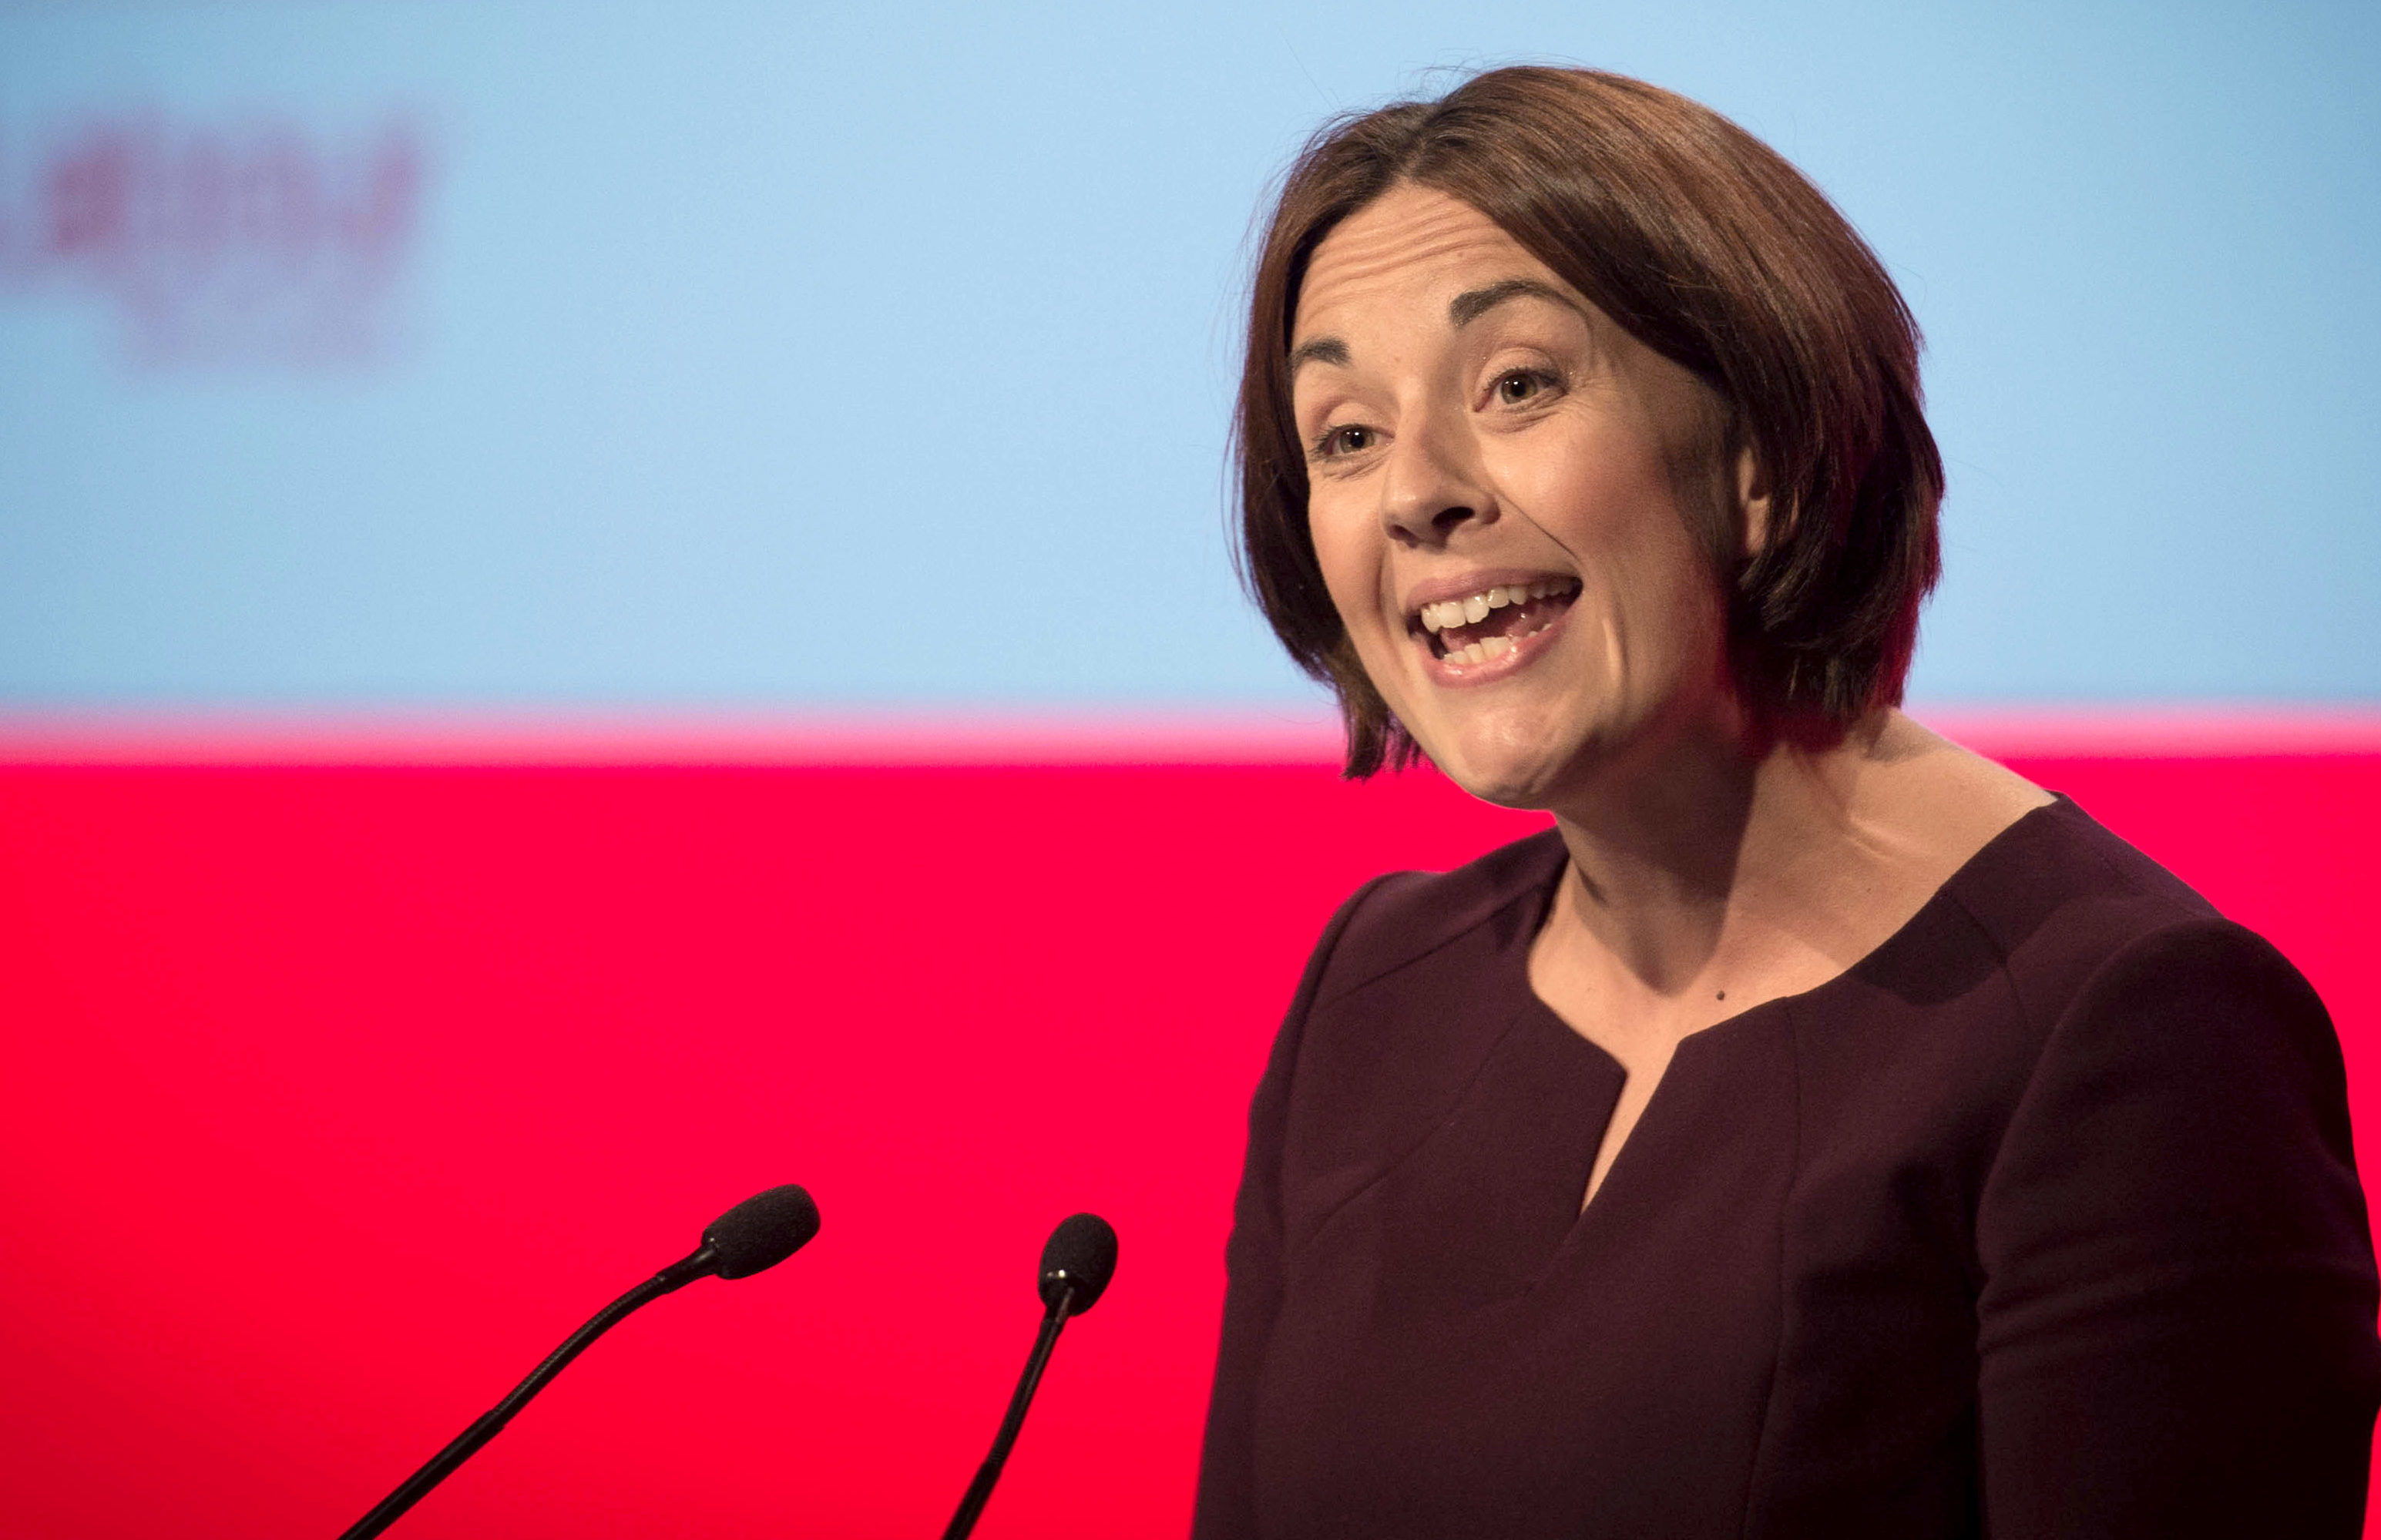 Scottish Labour's Kezia Dugdale (Stefan Rousseau - WPA Pool/Getty Images)